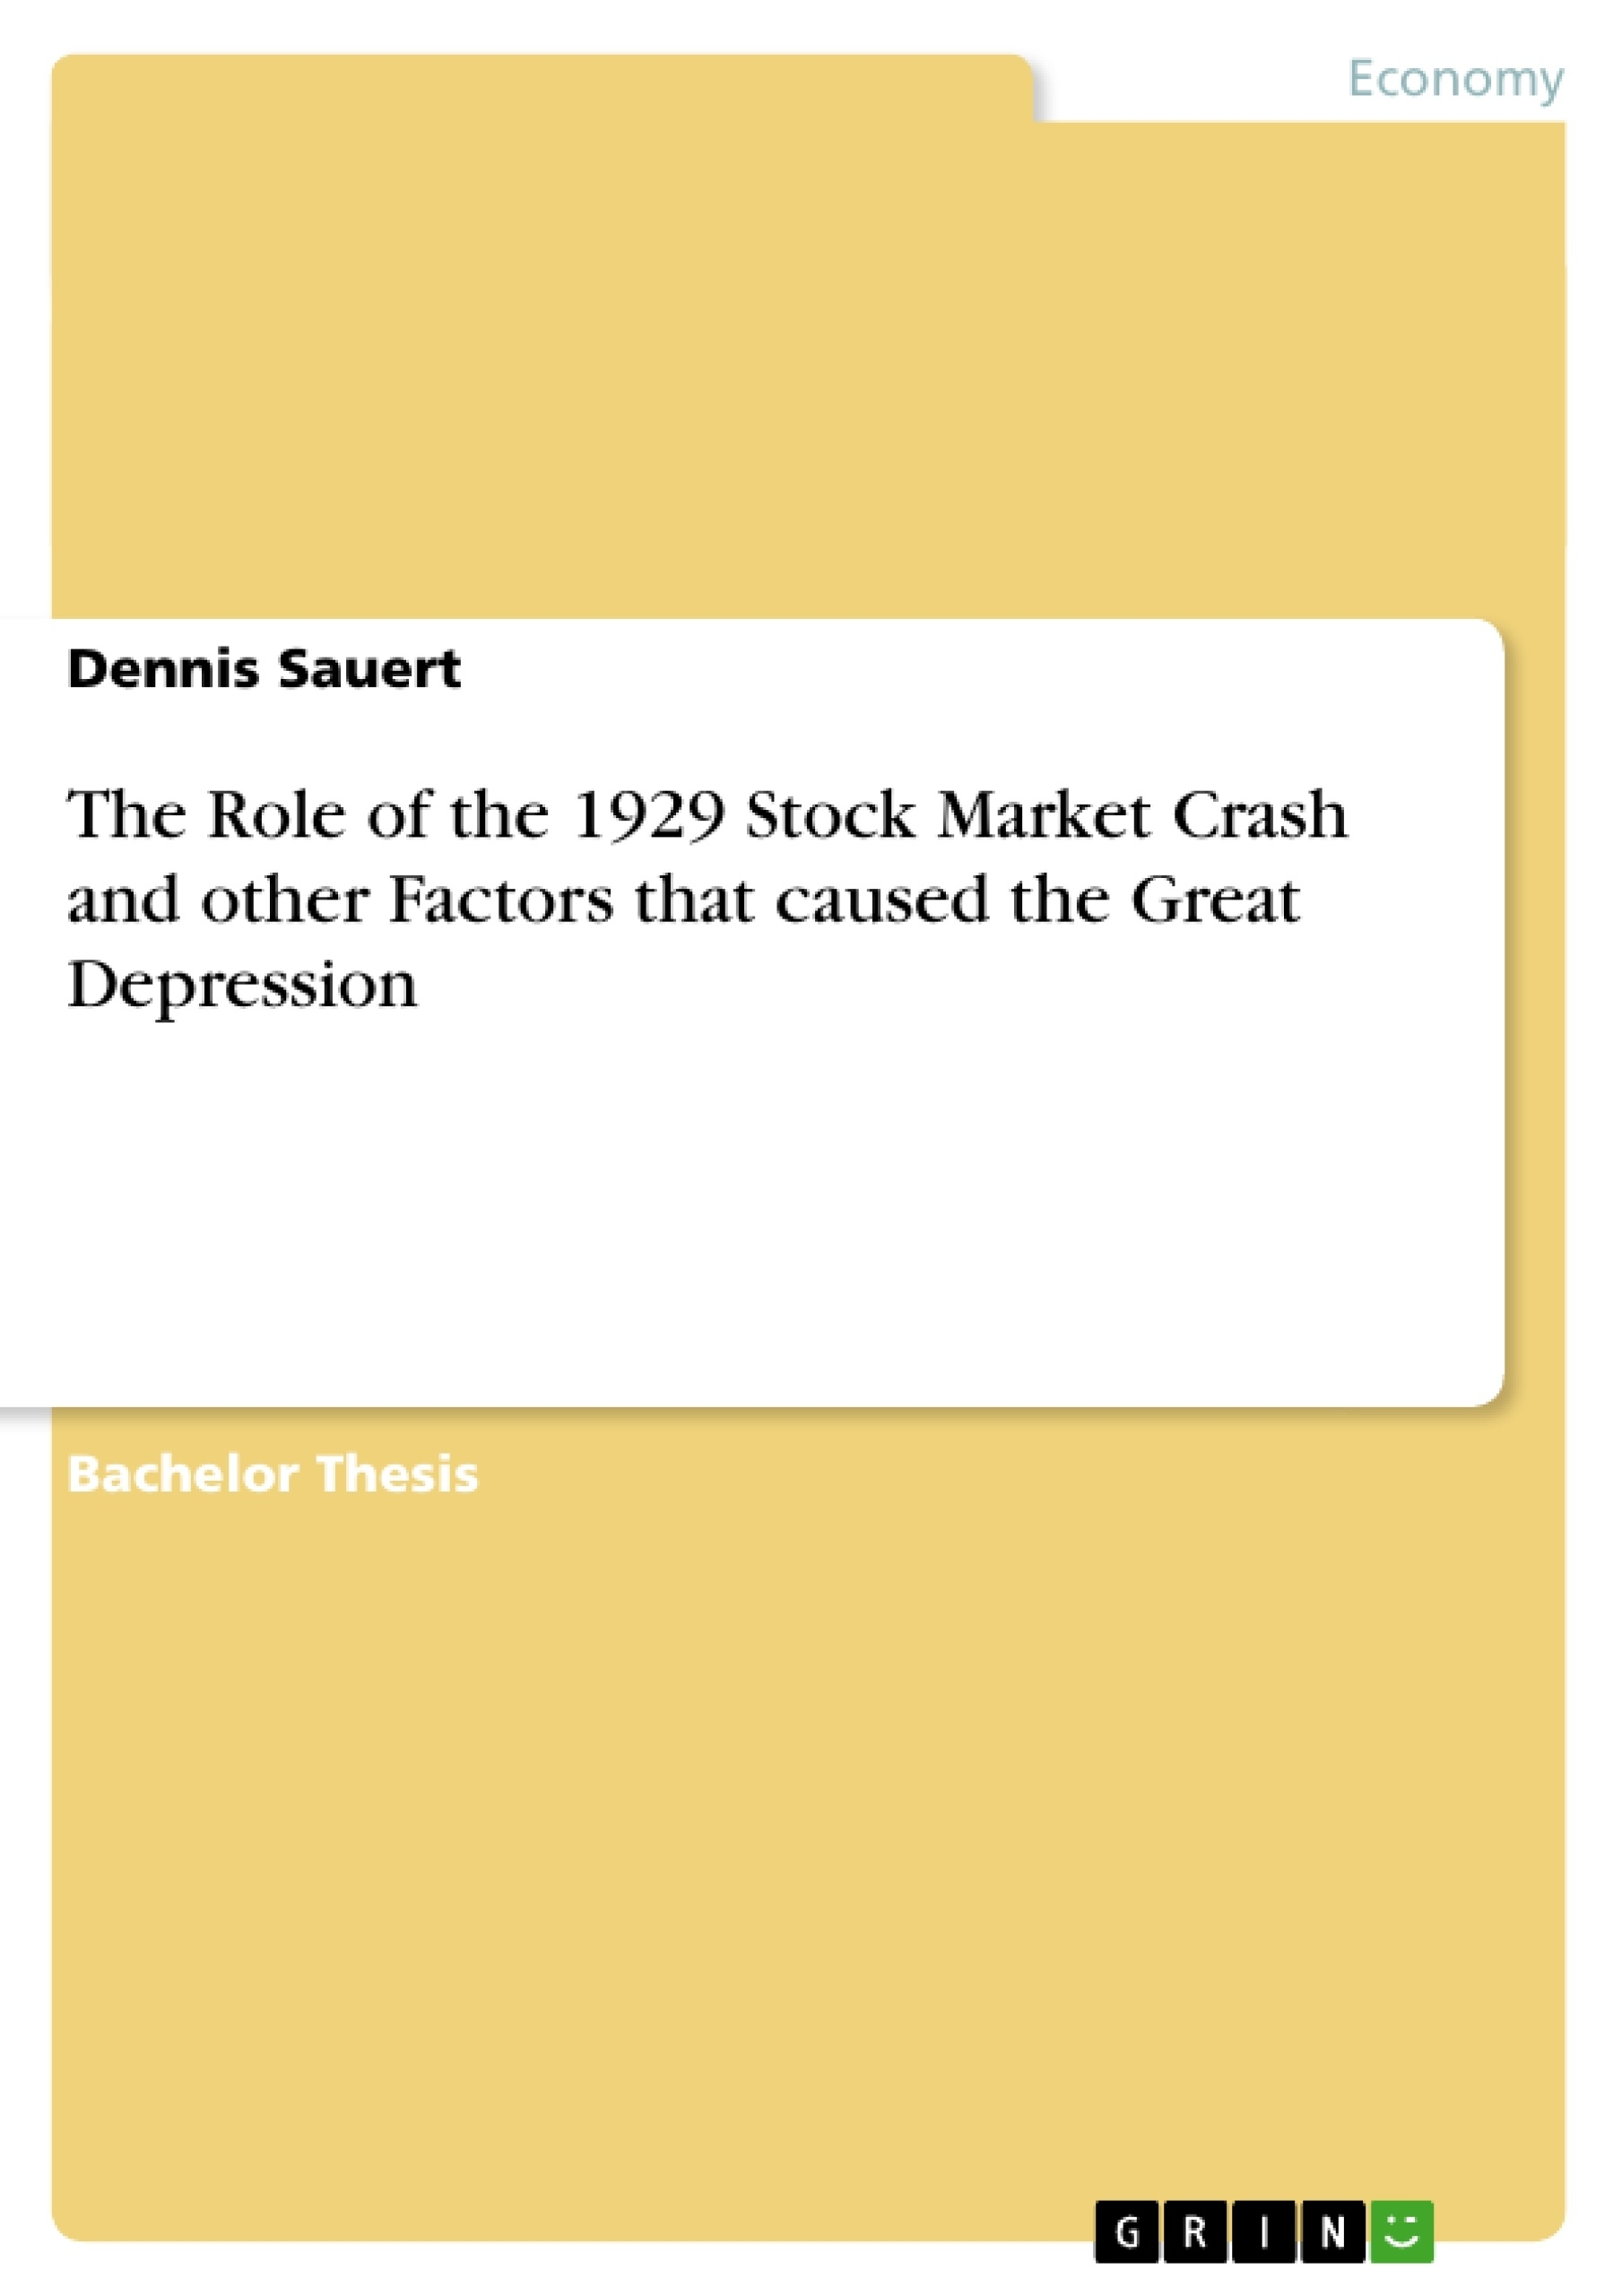 Title: The Role of the 1929 Stock Market Crash and other Factors that caused the Great Depression